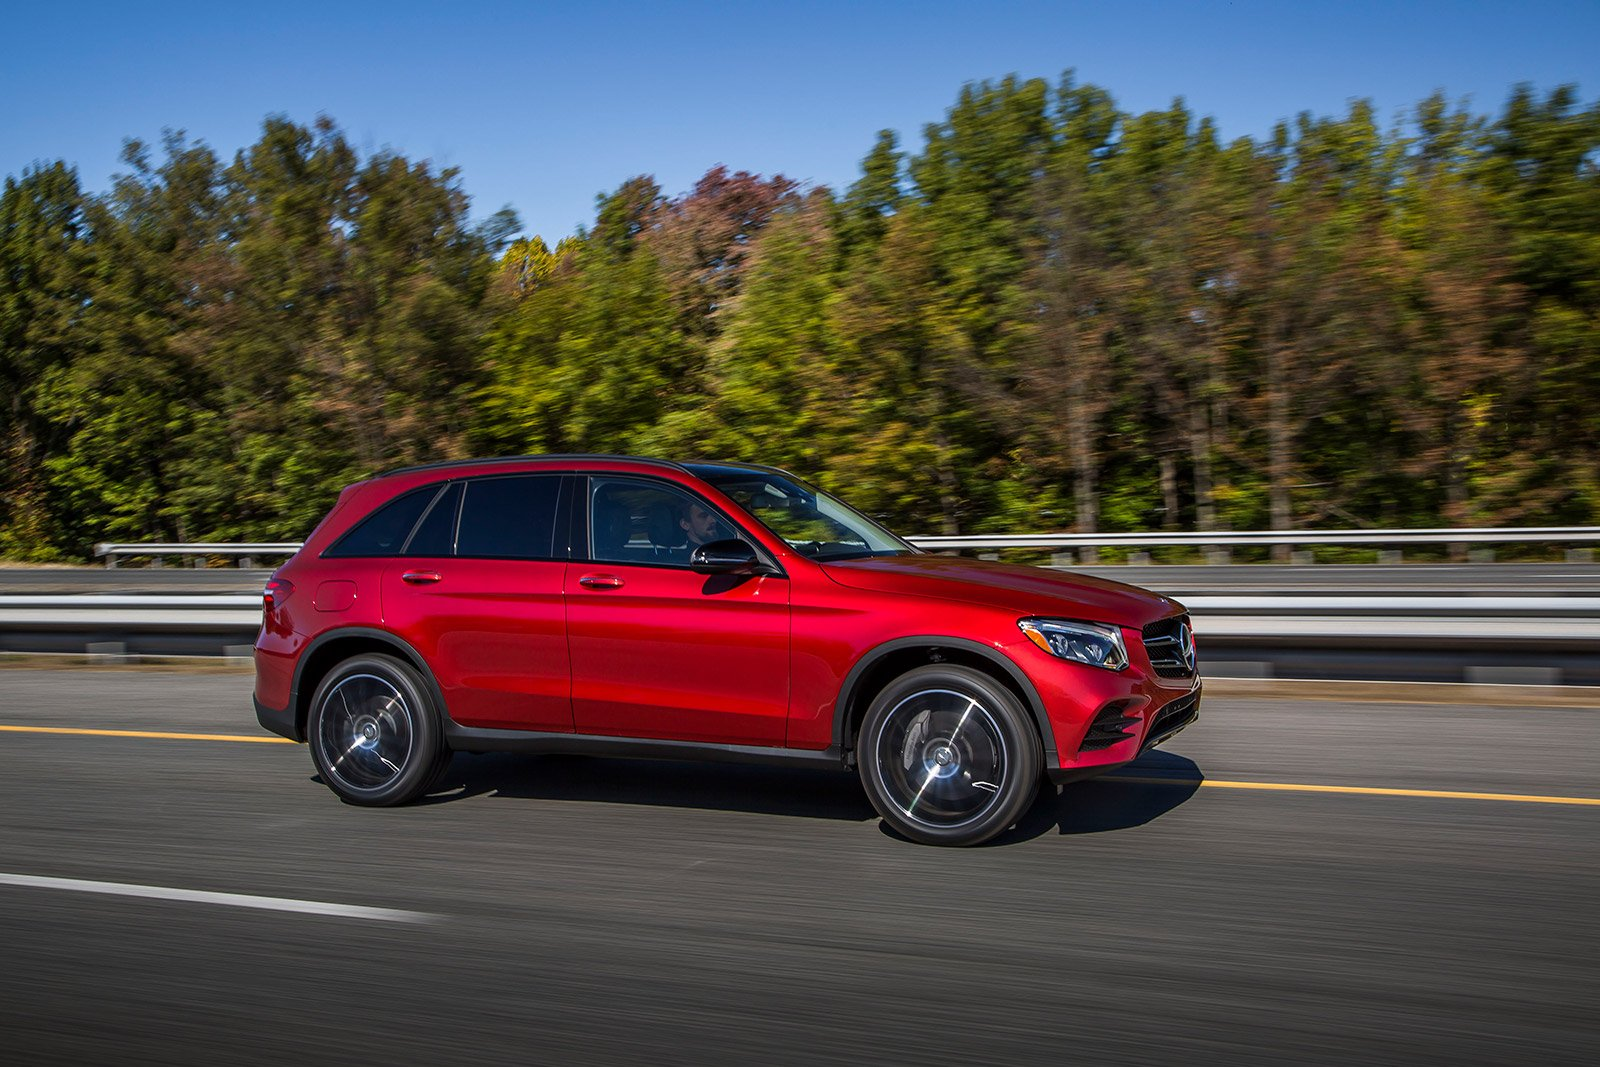 Top 15 Safest Cars Of 2018 According To Iihs 187 Autoguide